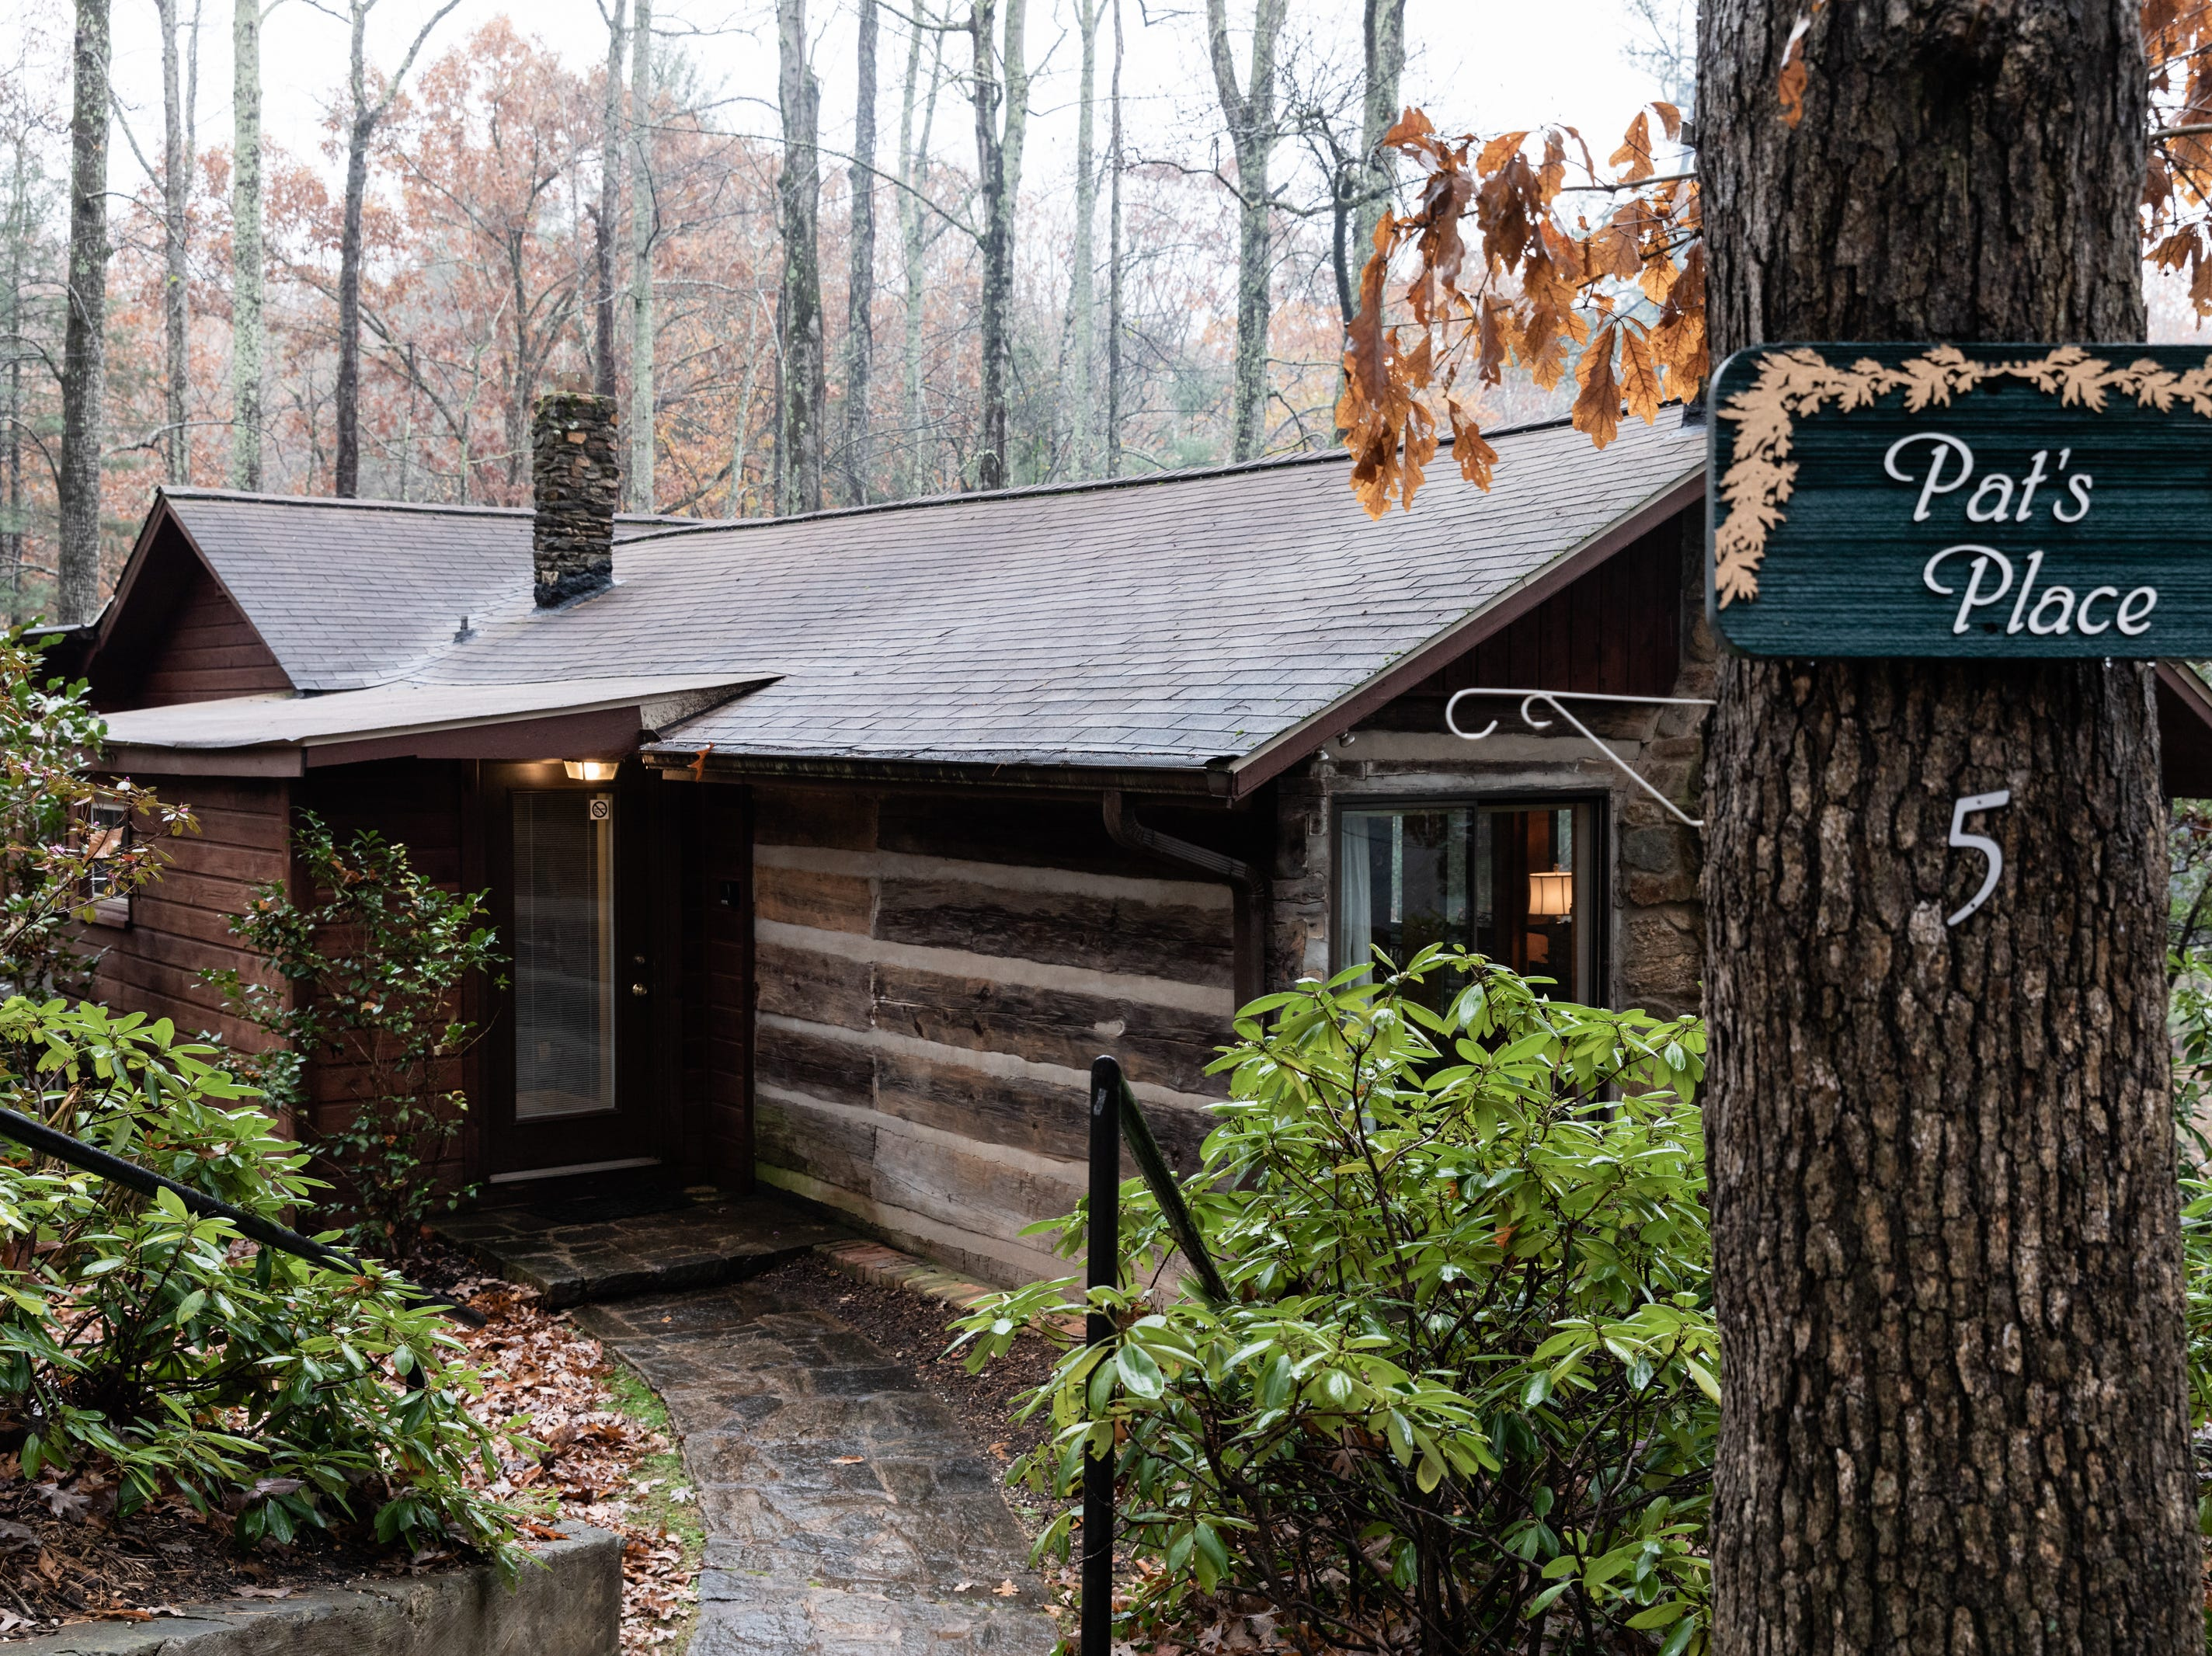 Pat's Place, an original 1800's log cabin at the McLeod family's Asheville Cabins of Willow Winds vacation rentals in South Asheville off of Sweeten Creek Road.